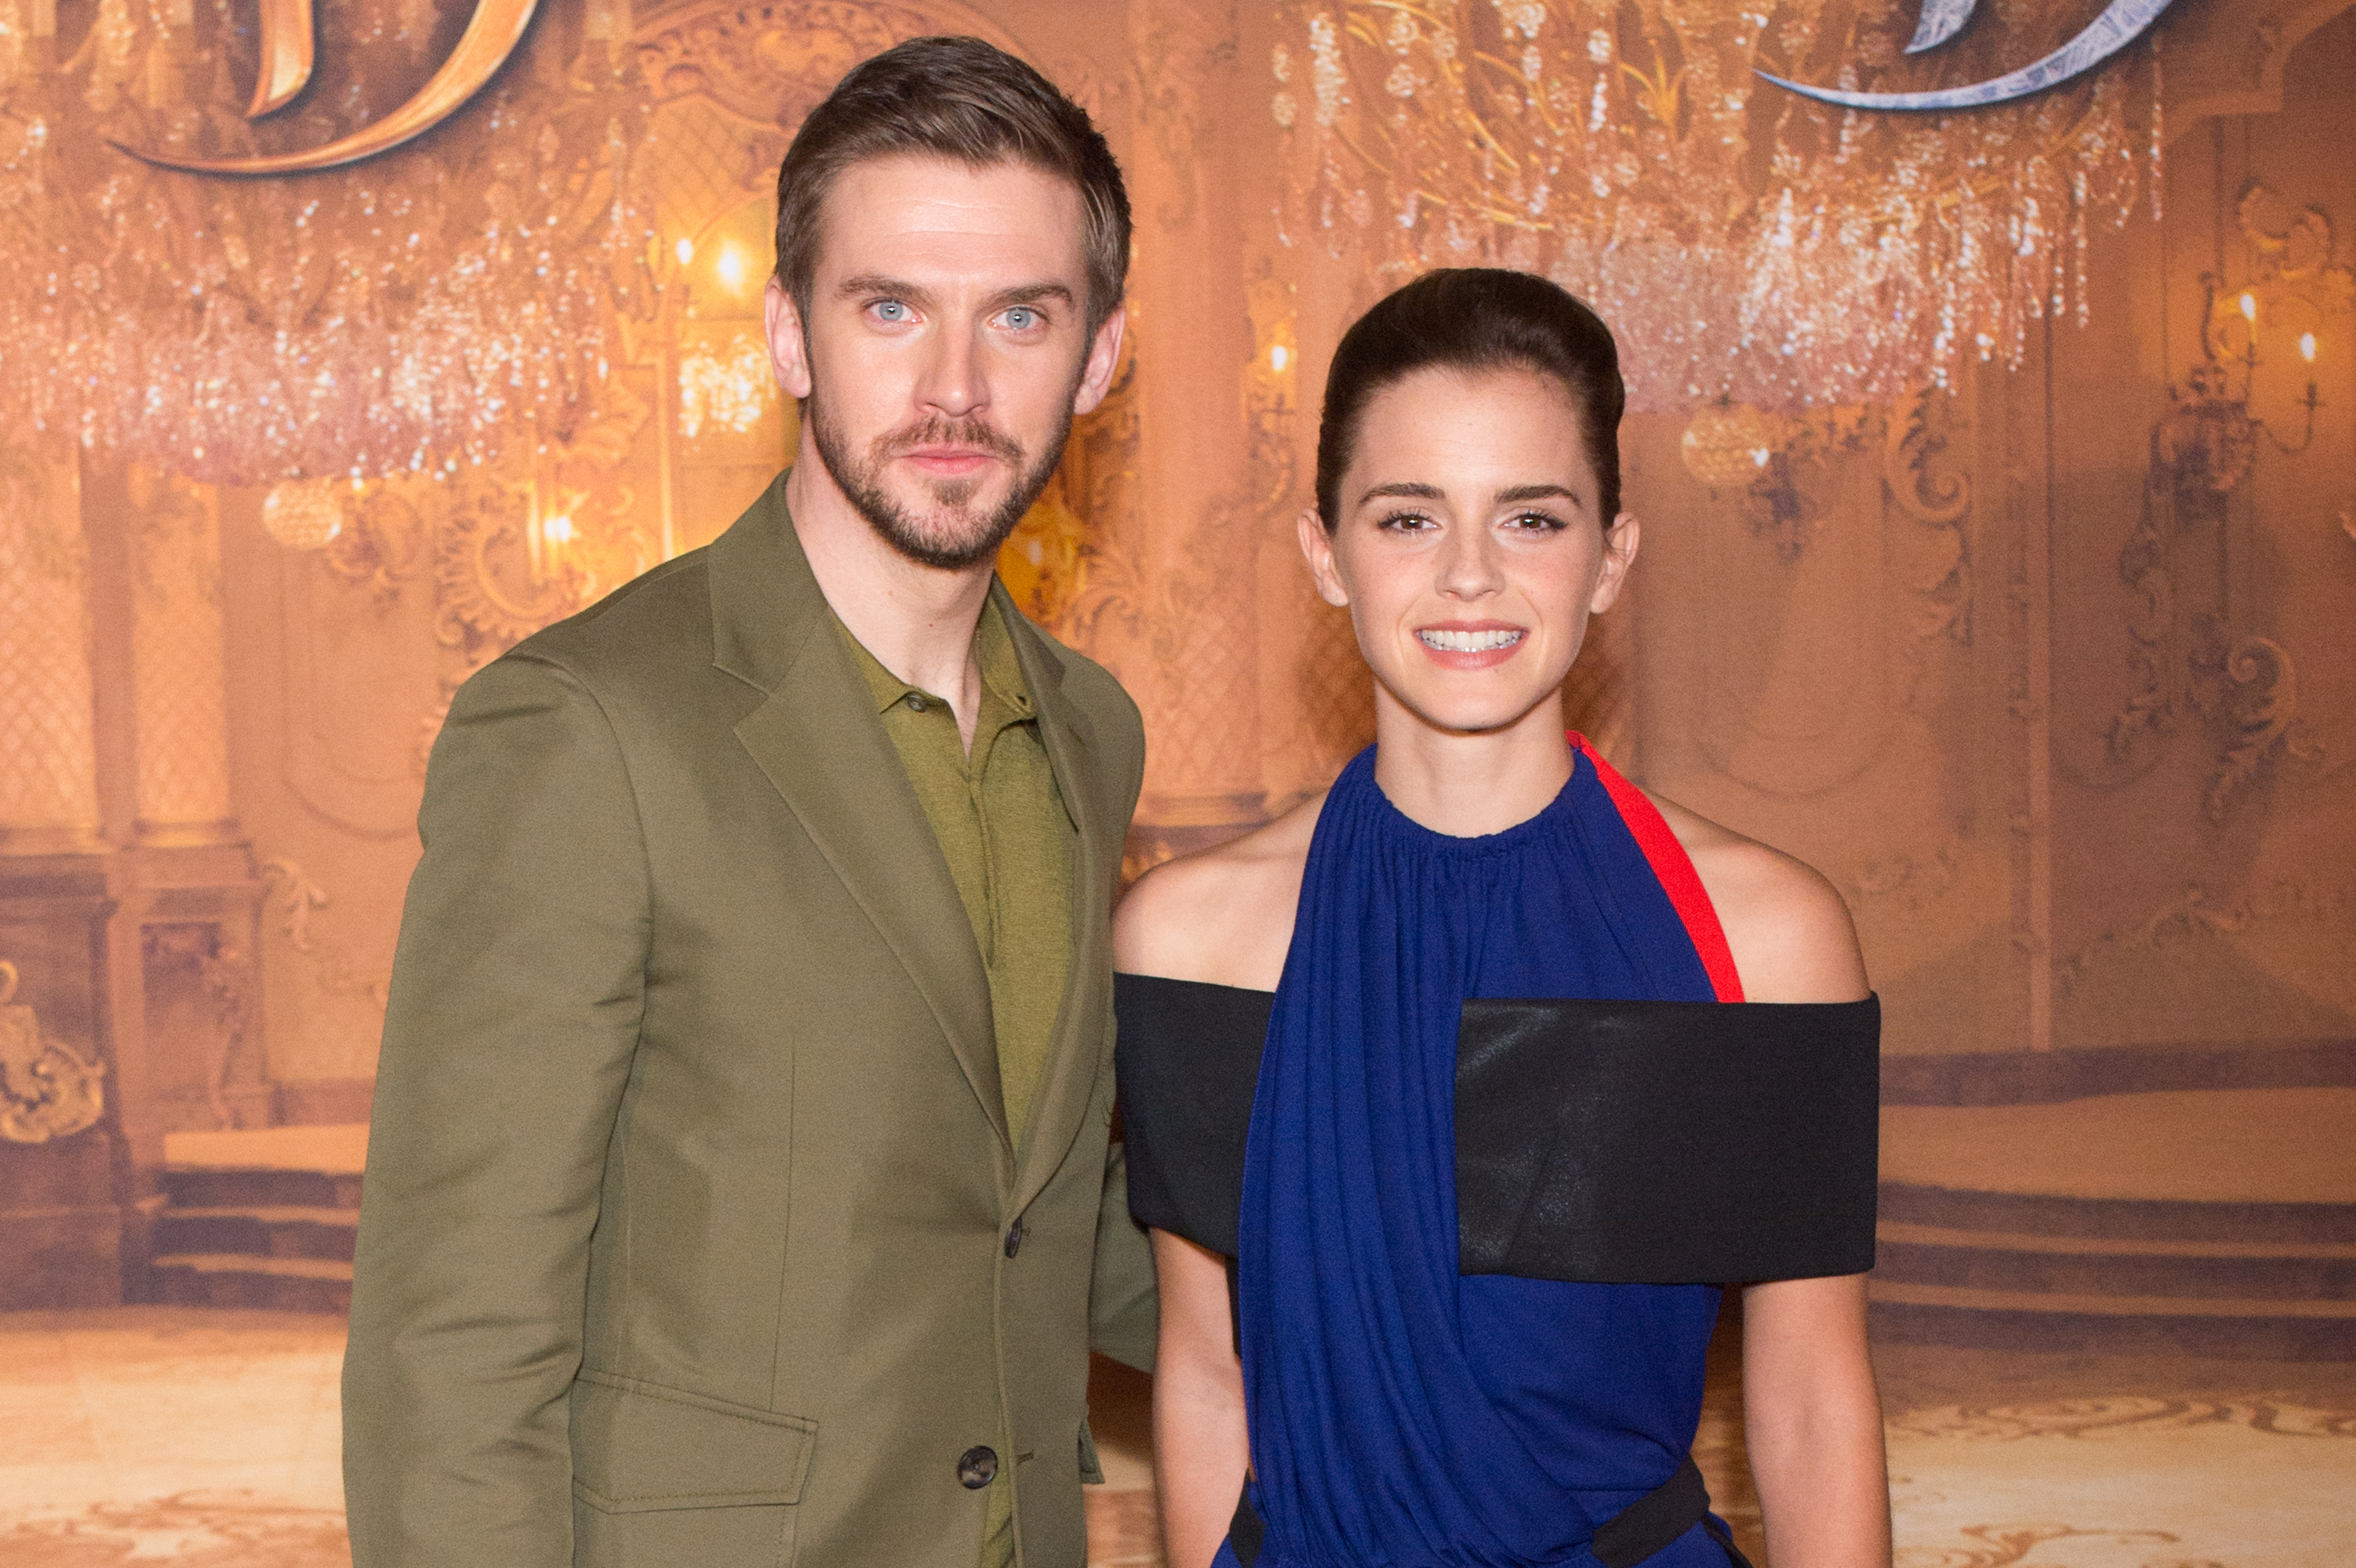 Emma Watson and Dan Stevens on why Beauty And The Beast is the film we need right now